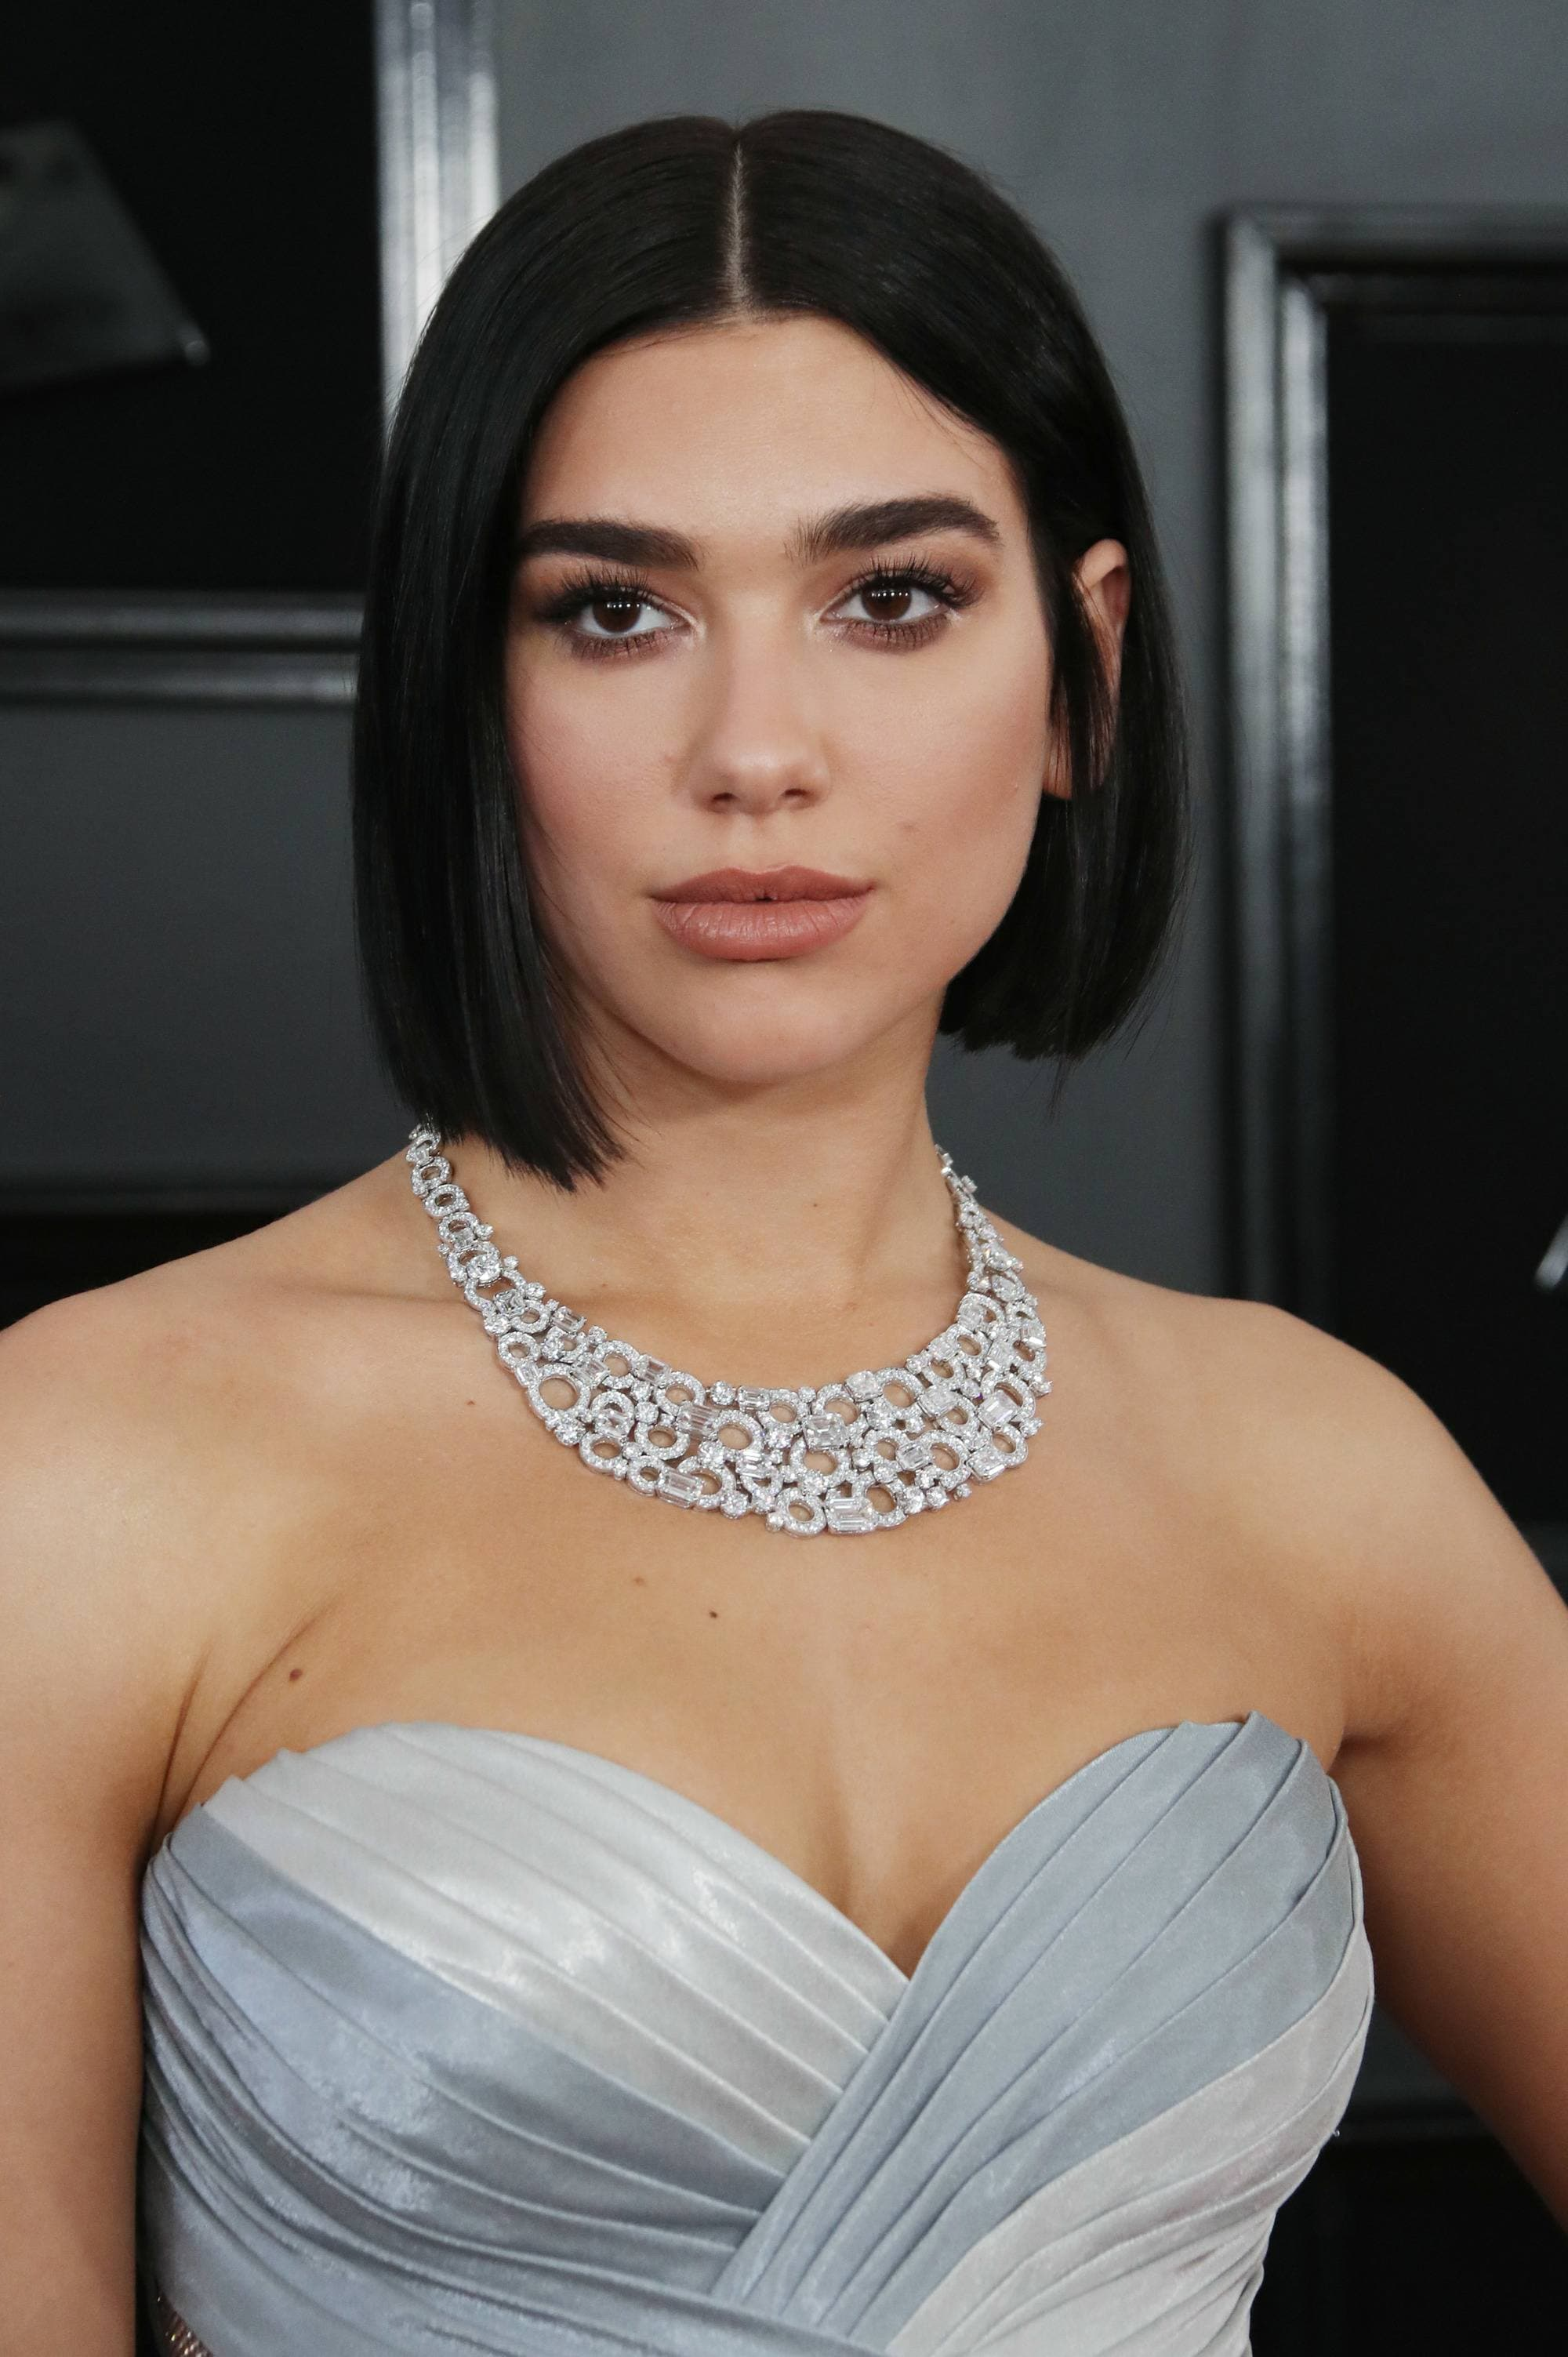 Dua Lipa with a blunt bob haircut, wearing necklace with low cut silver dress